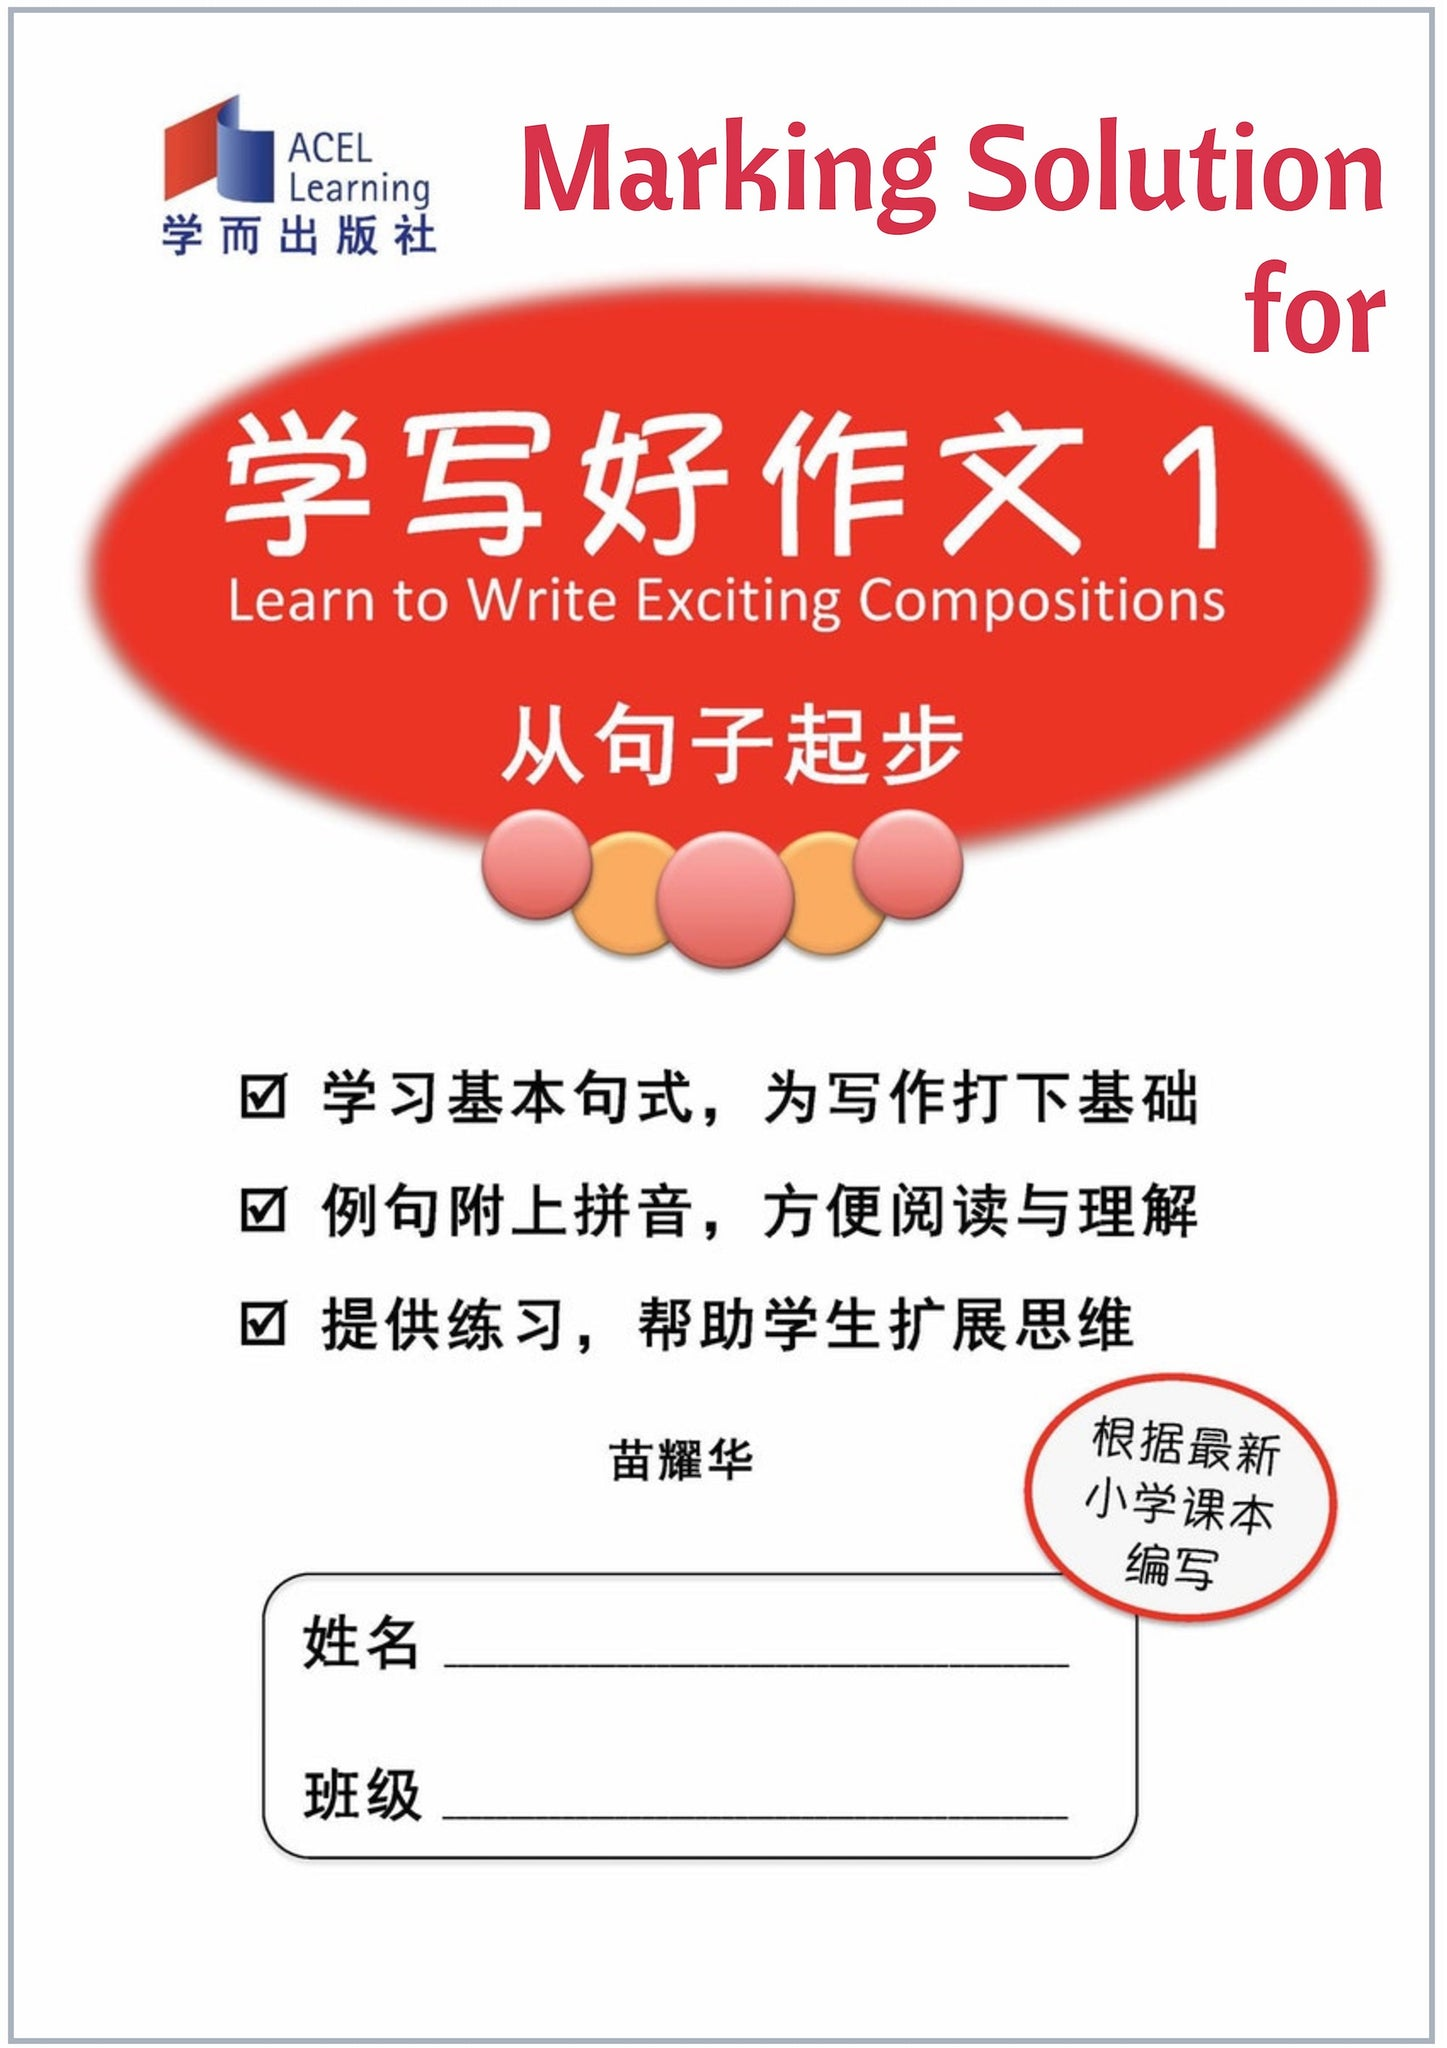 Marking Solution for Learn to Write Exciting Compositions 1